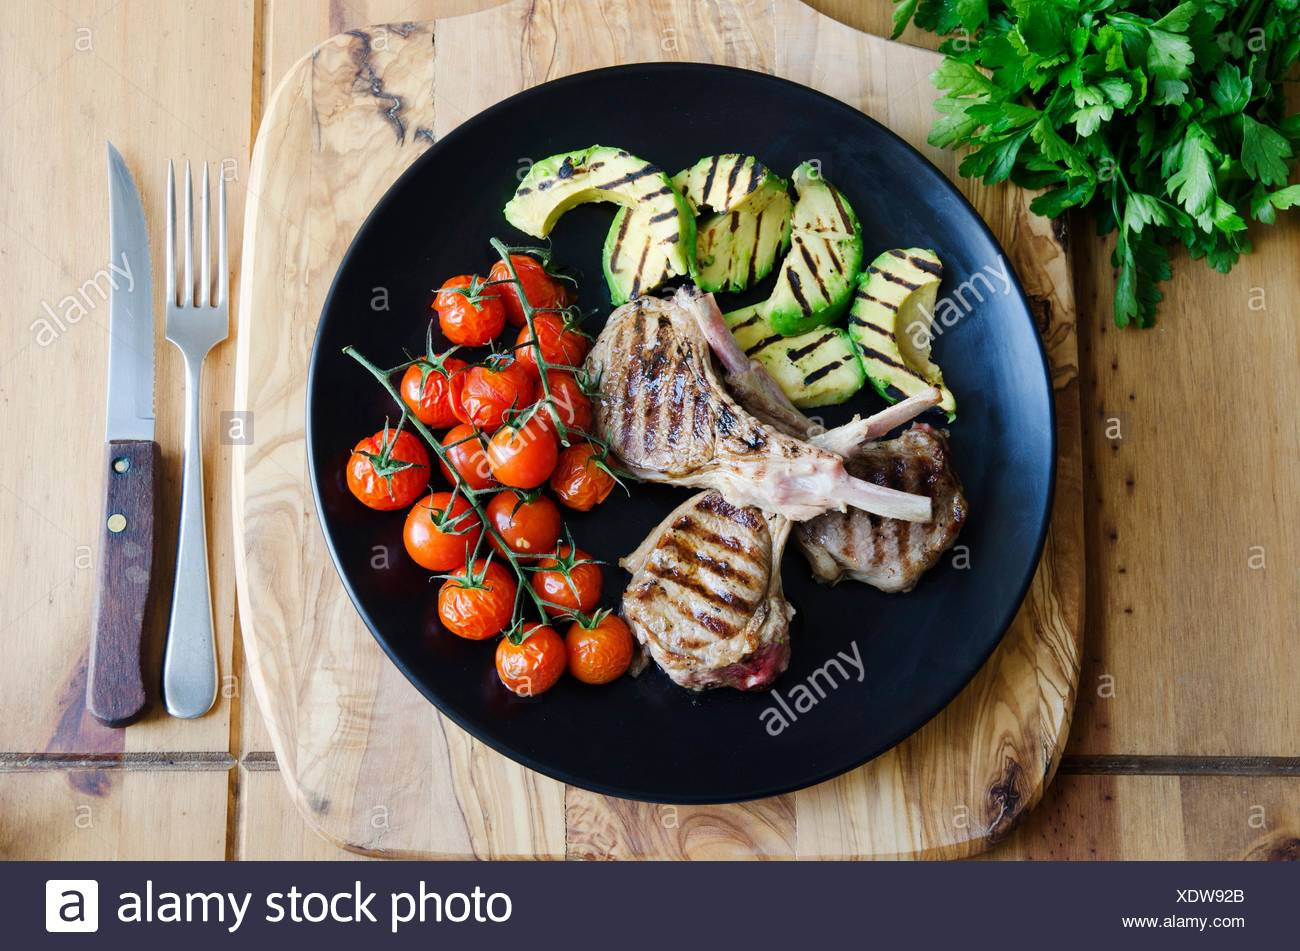 Griddled lamb cutlets with avocado and cherry tomatoes. Stock Photo